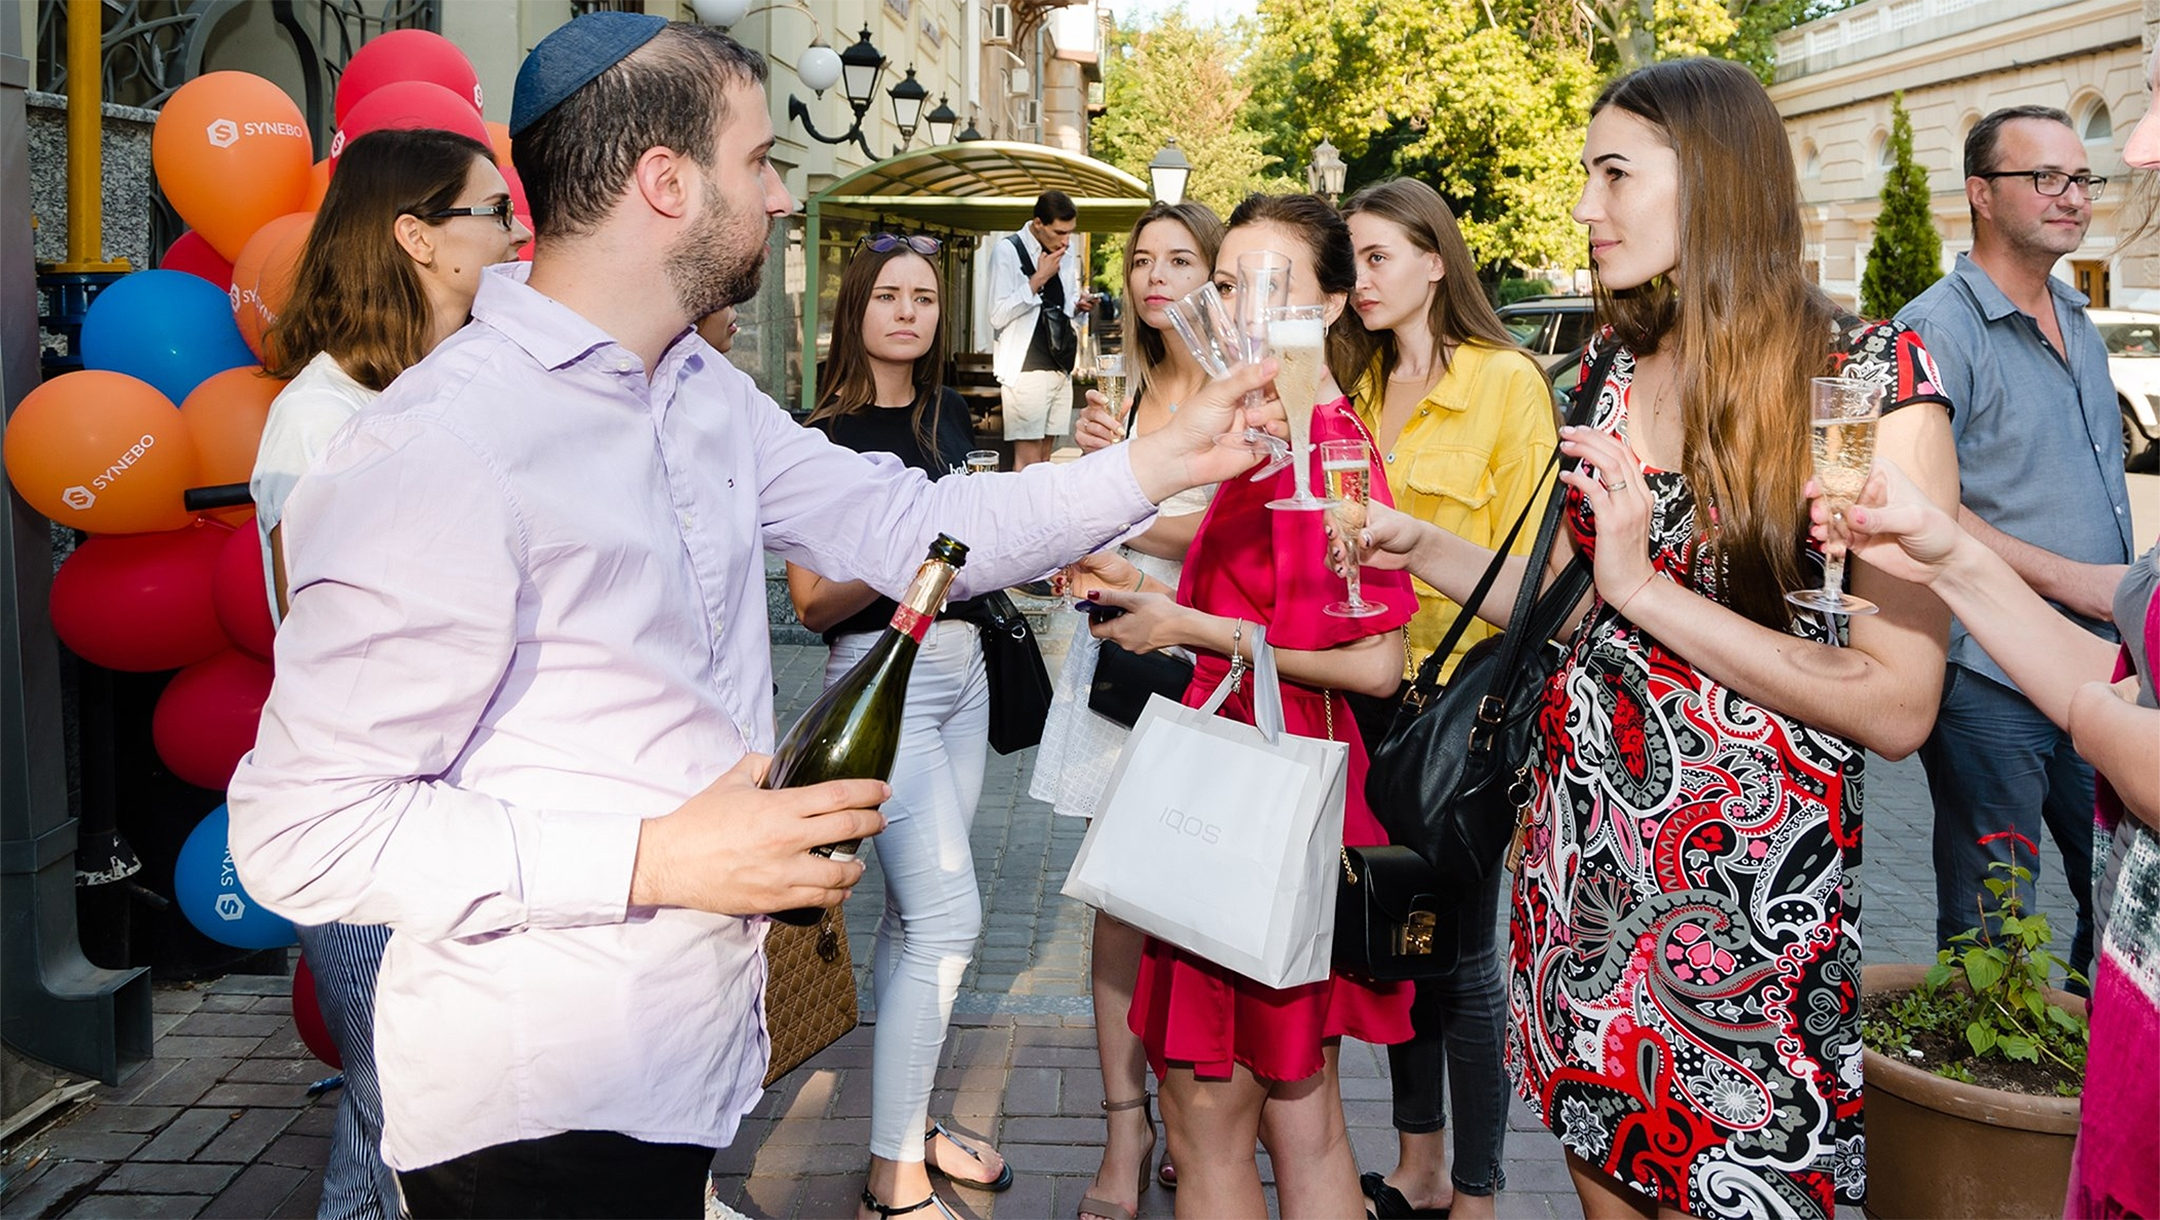 Patrons of Kosher Bar toasting outside the establishment in Odessa, Ukraine on Sept. 1, 2019. (Courteasy of Kosher Bar)